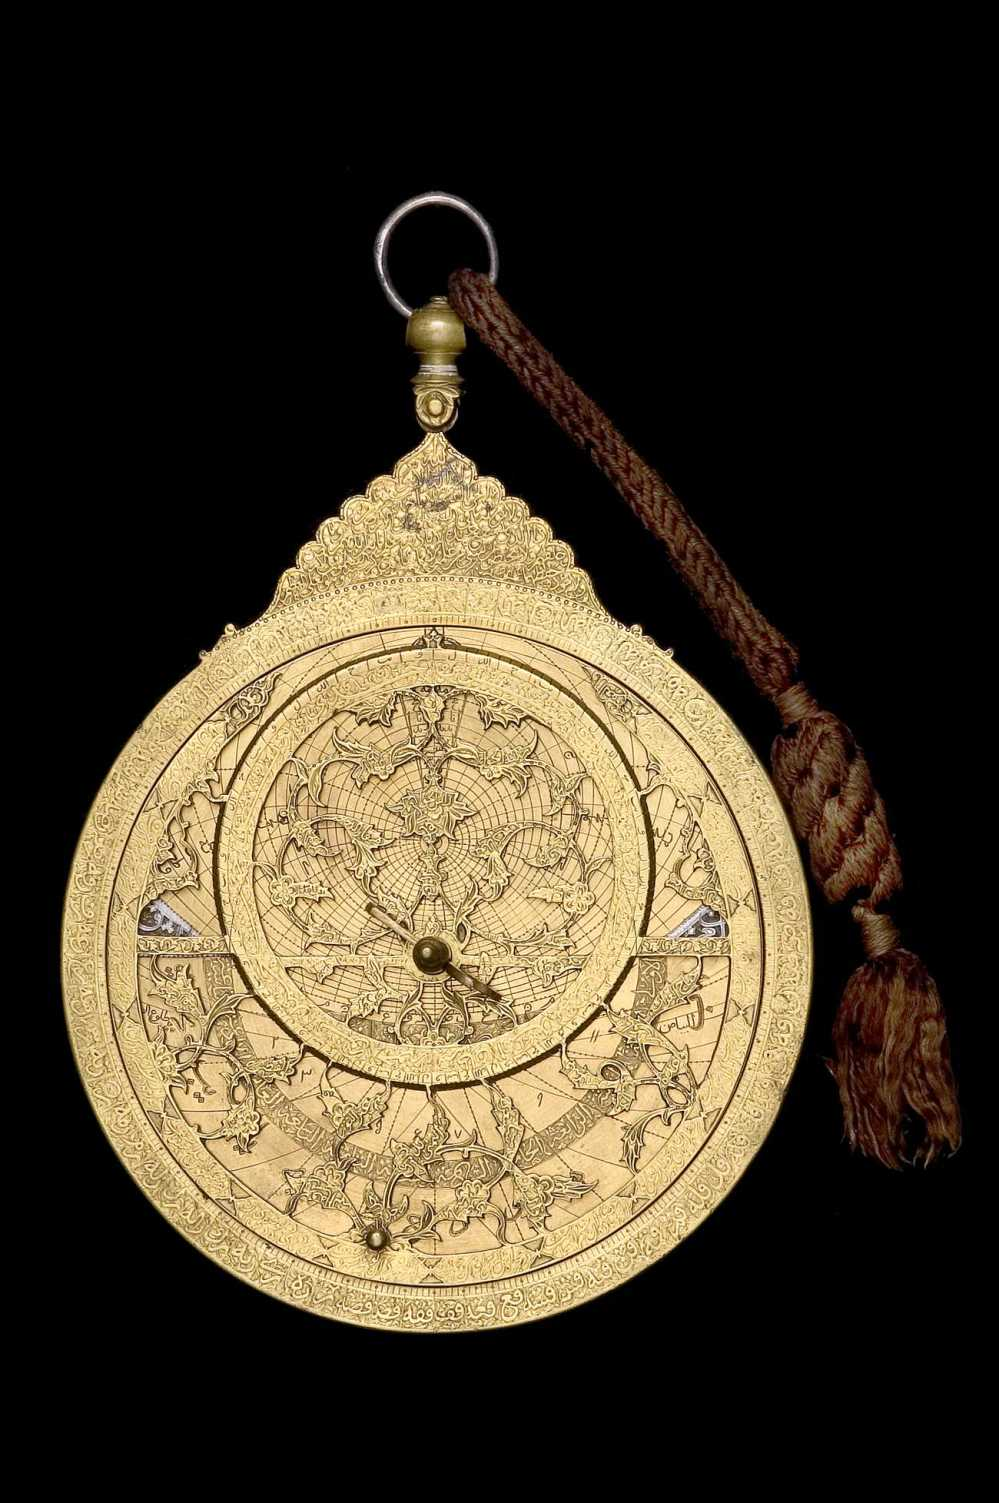 preview image for Astrolabe, by Muhammad Mahdi al-Yazdi, Persian, c. 1660